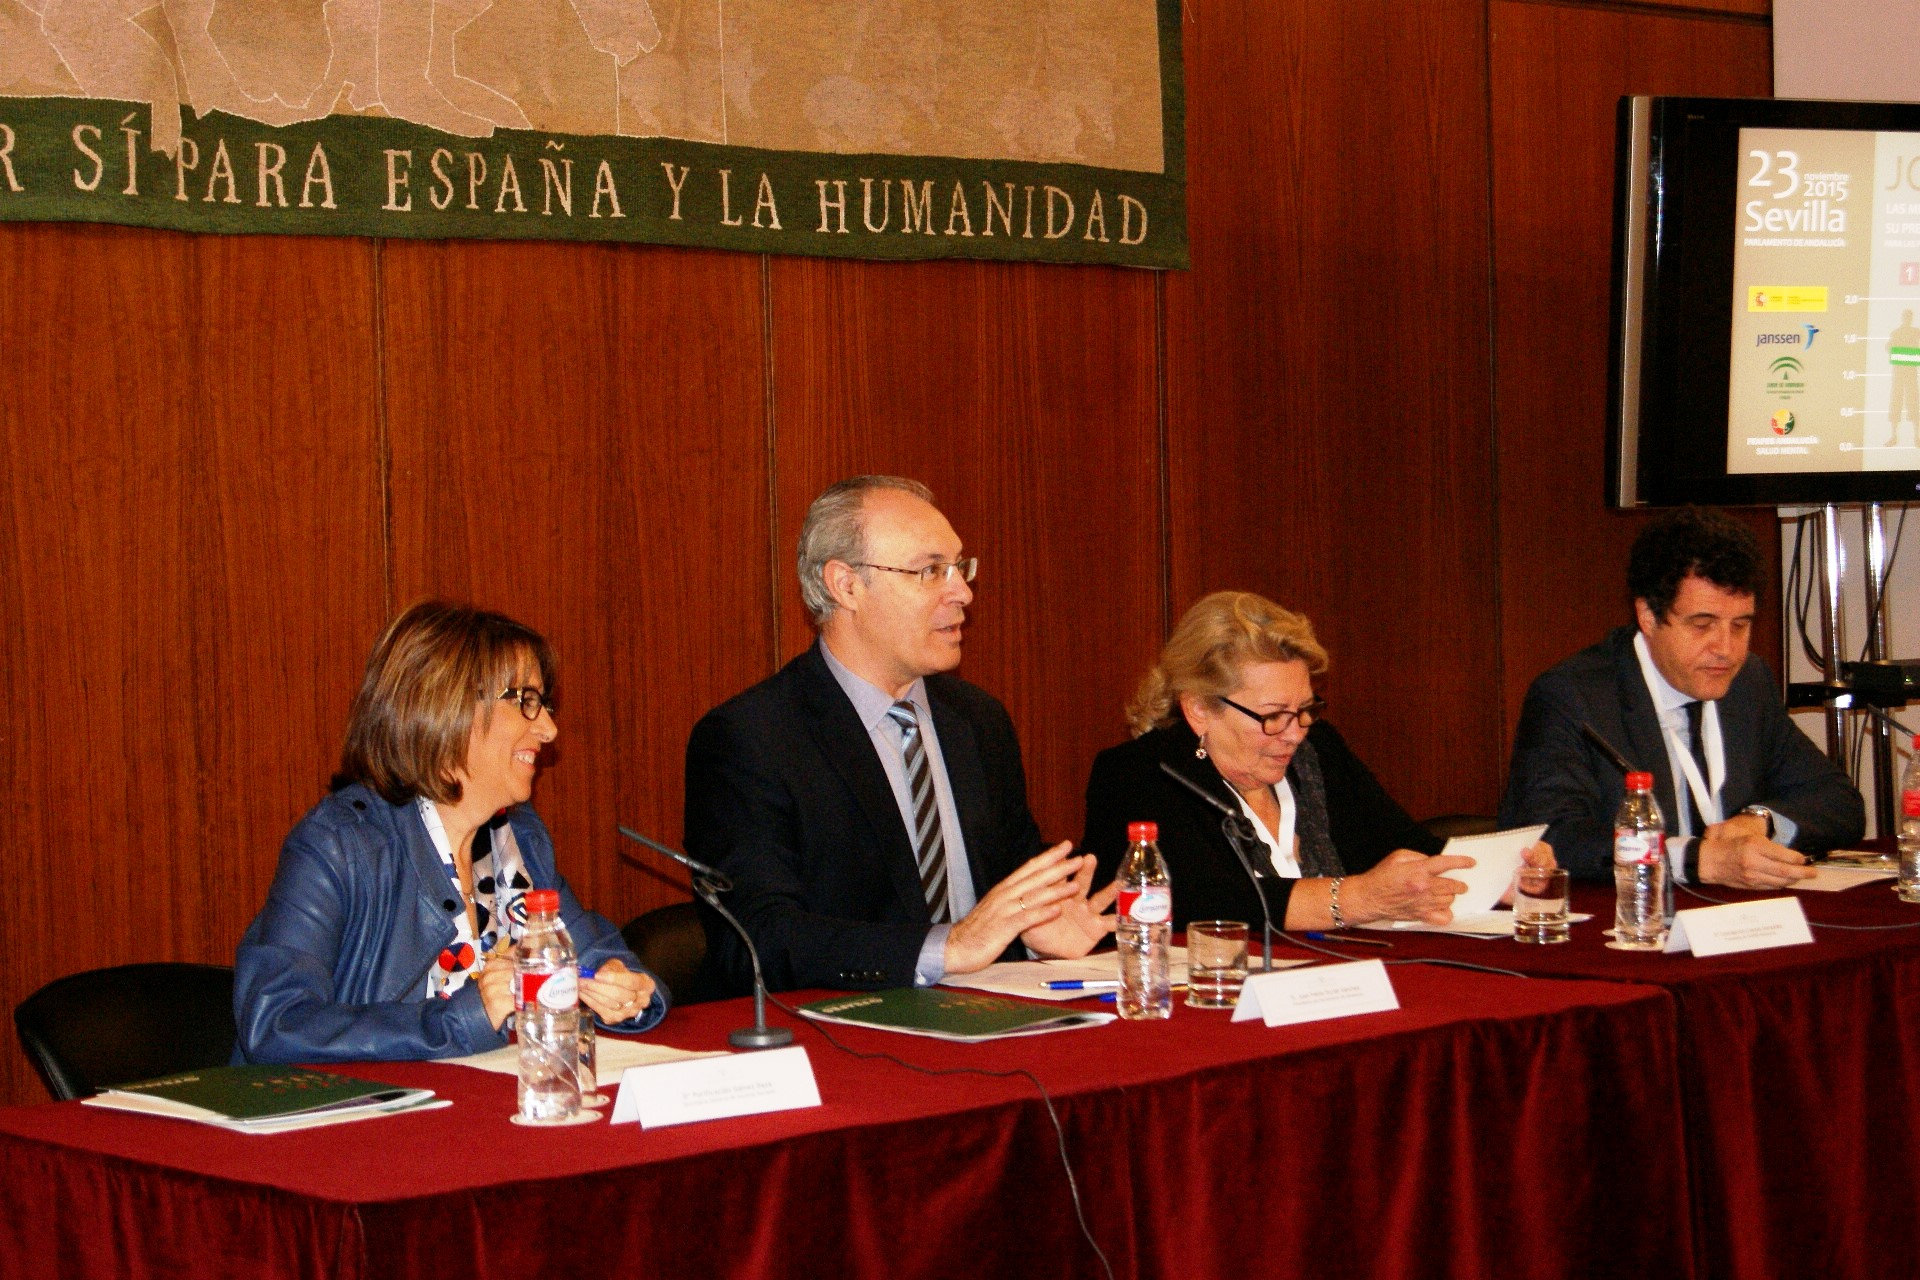 acto inaugural feafes andalucía